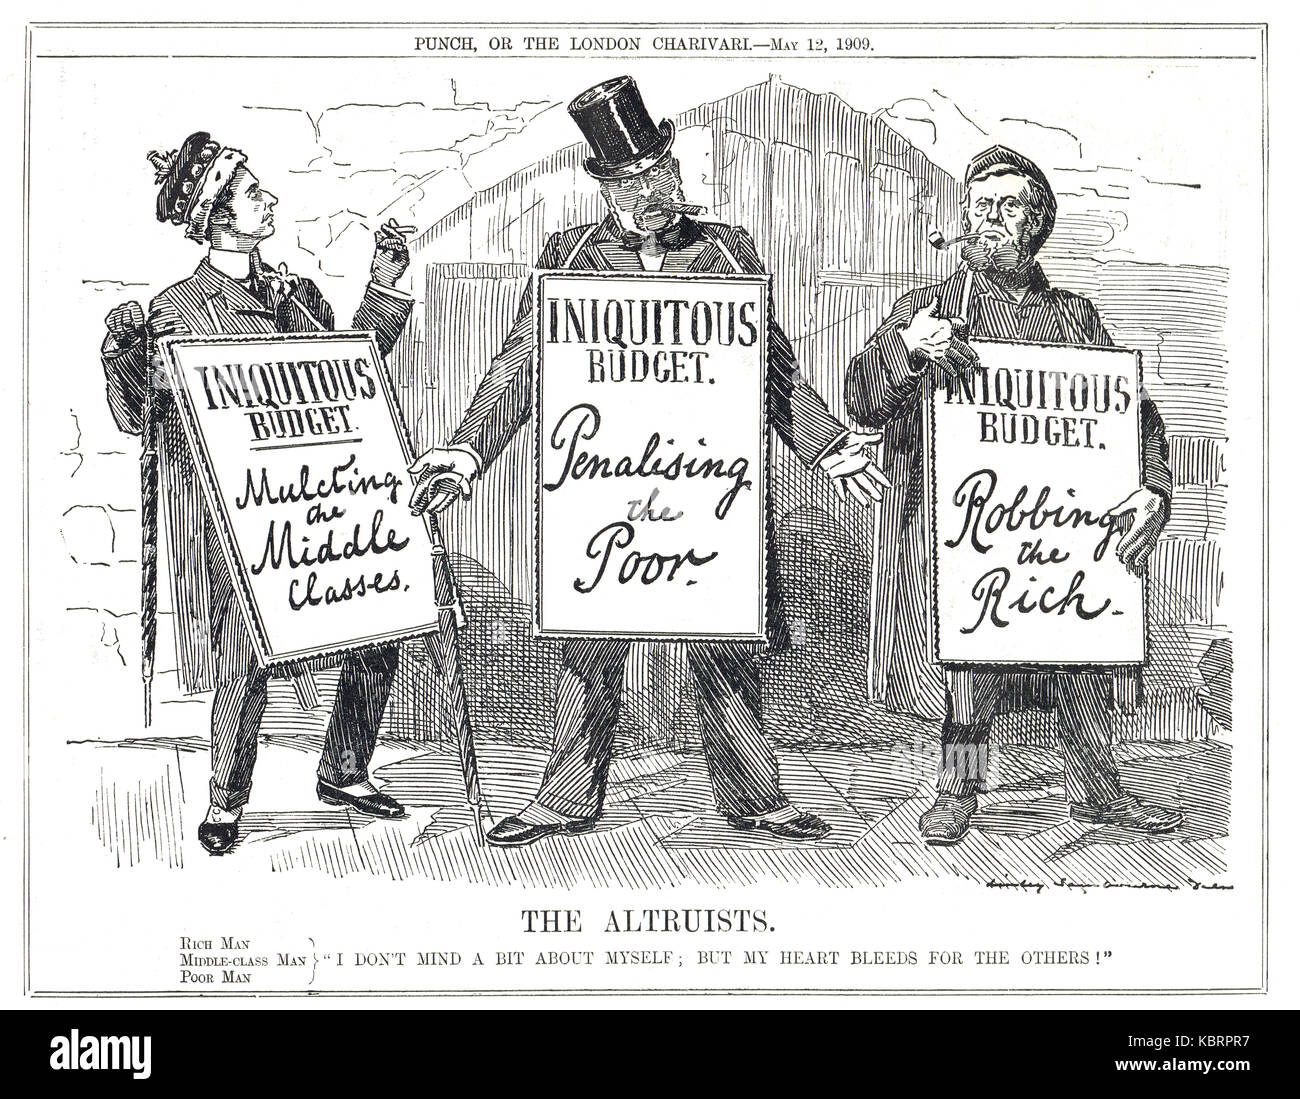 The People's budget an altruistic protest, Punch 1909 - Stock Image